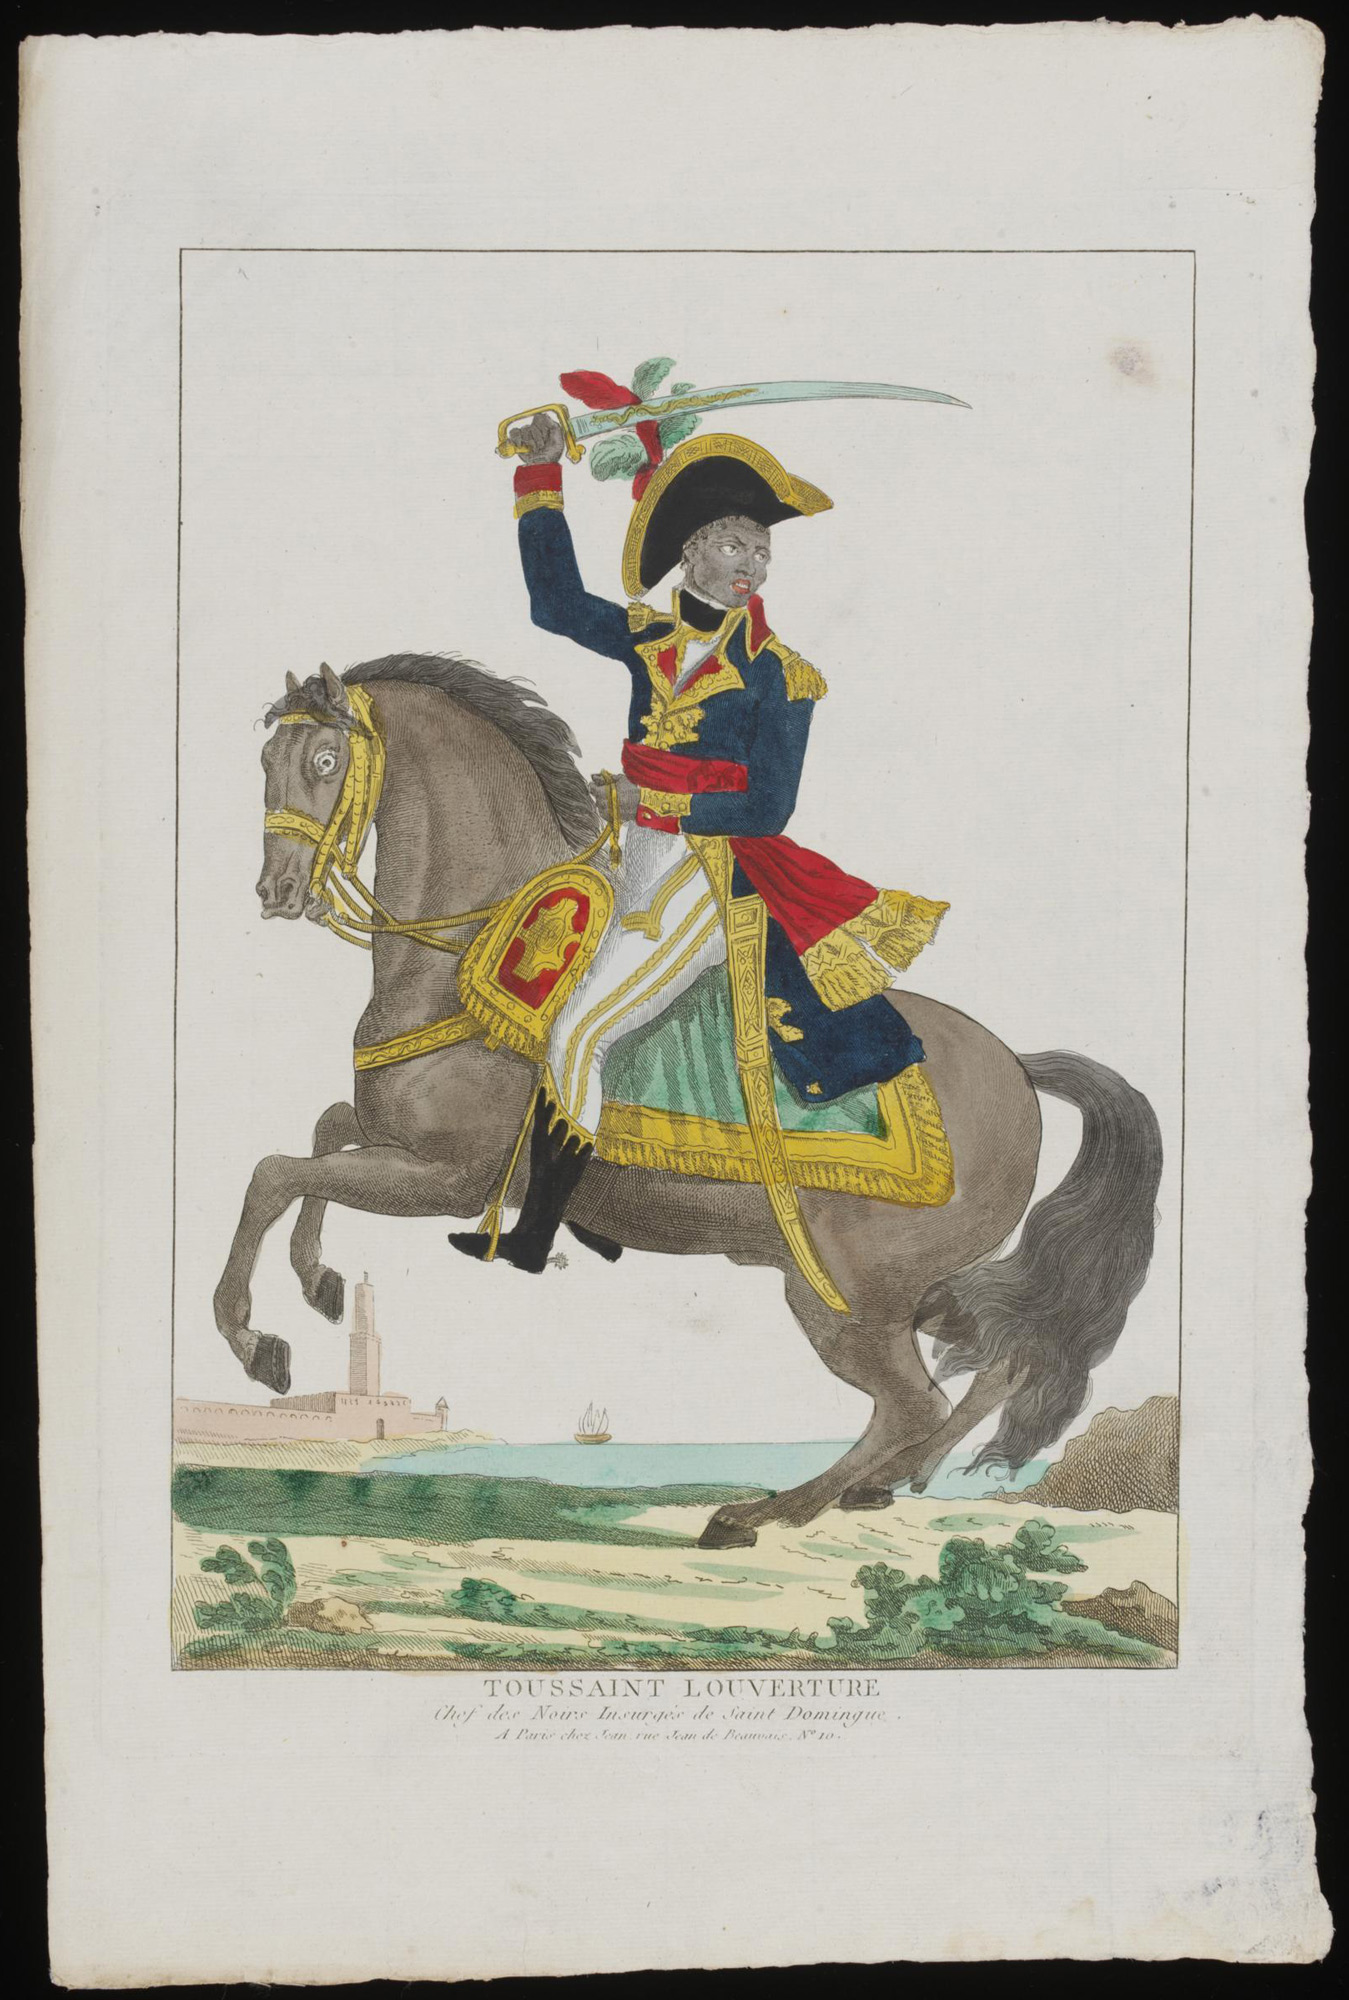 Hand coloured etching depicting Toussaint L'Ouverture seated on a horse wearing the full dress uniform of an officer and carrying a sabre above his head